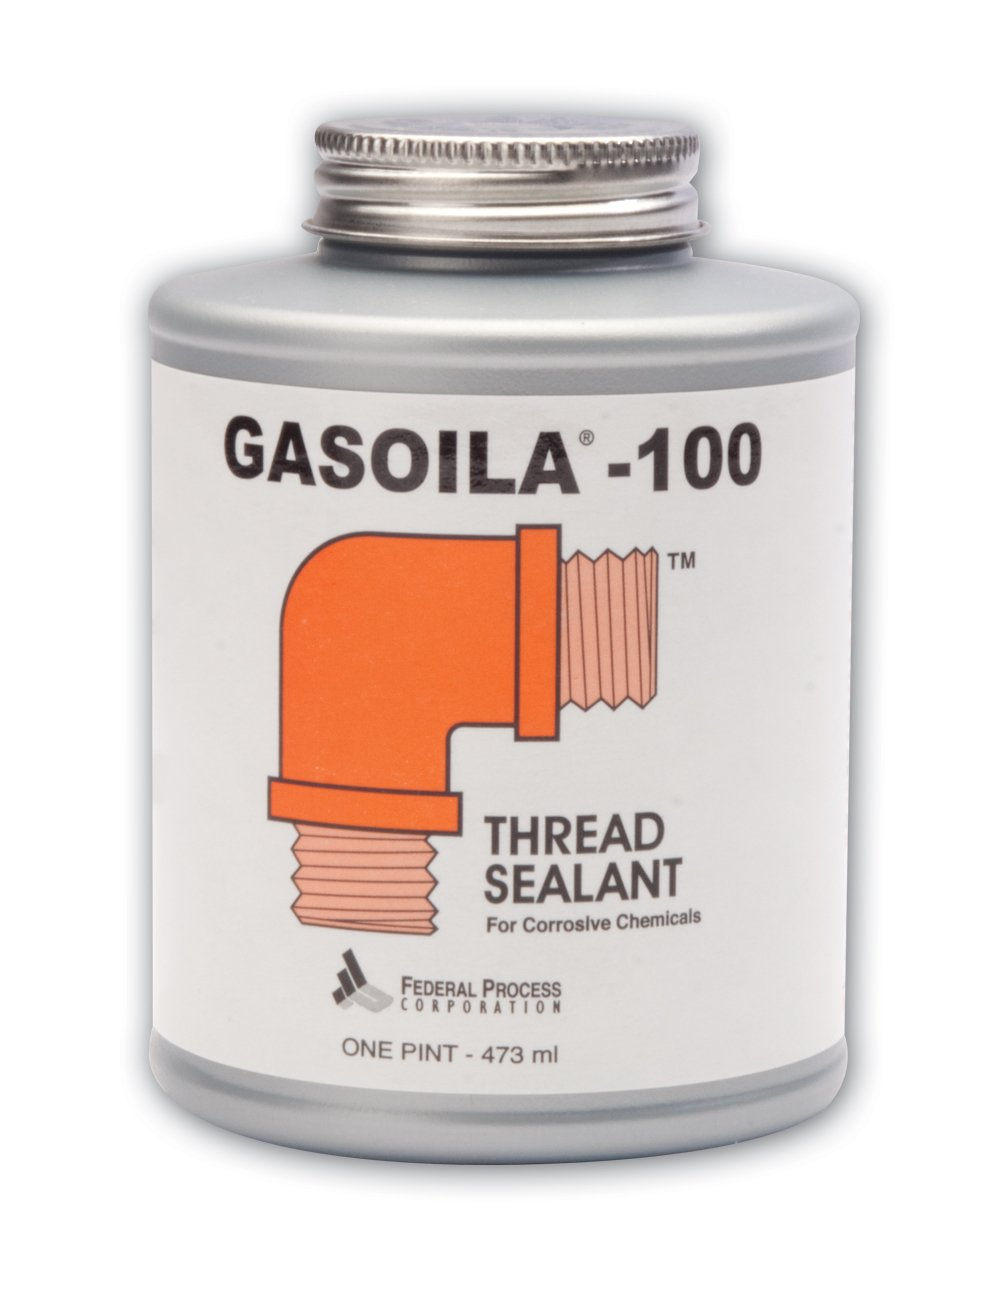 Gasoila 100 Soft-Set Thread Sealant, -50 to 450 Degree F, For Corrosive Chemicals, 1 Pint Brush Federal Process GH16